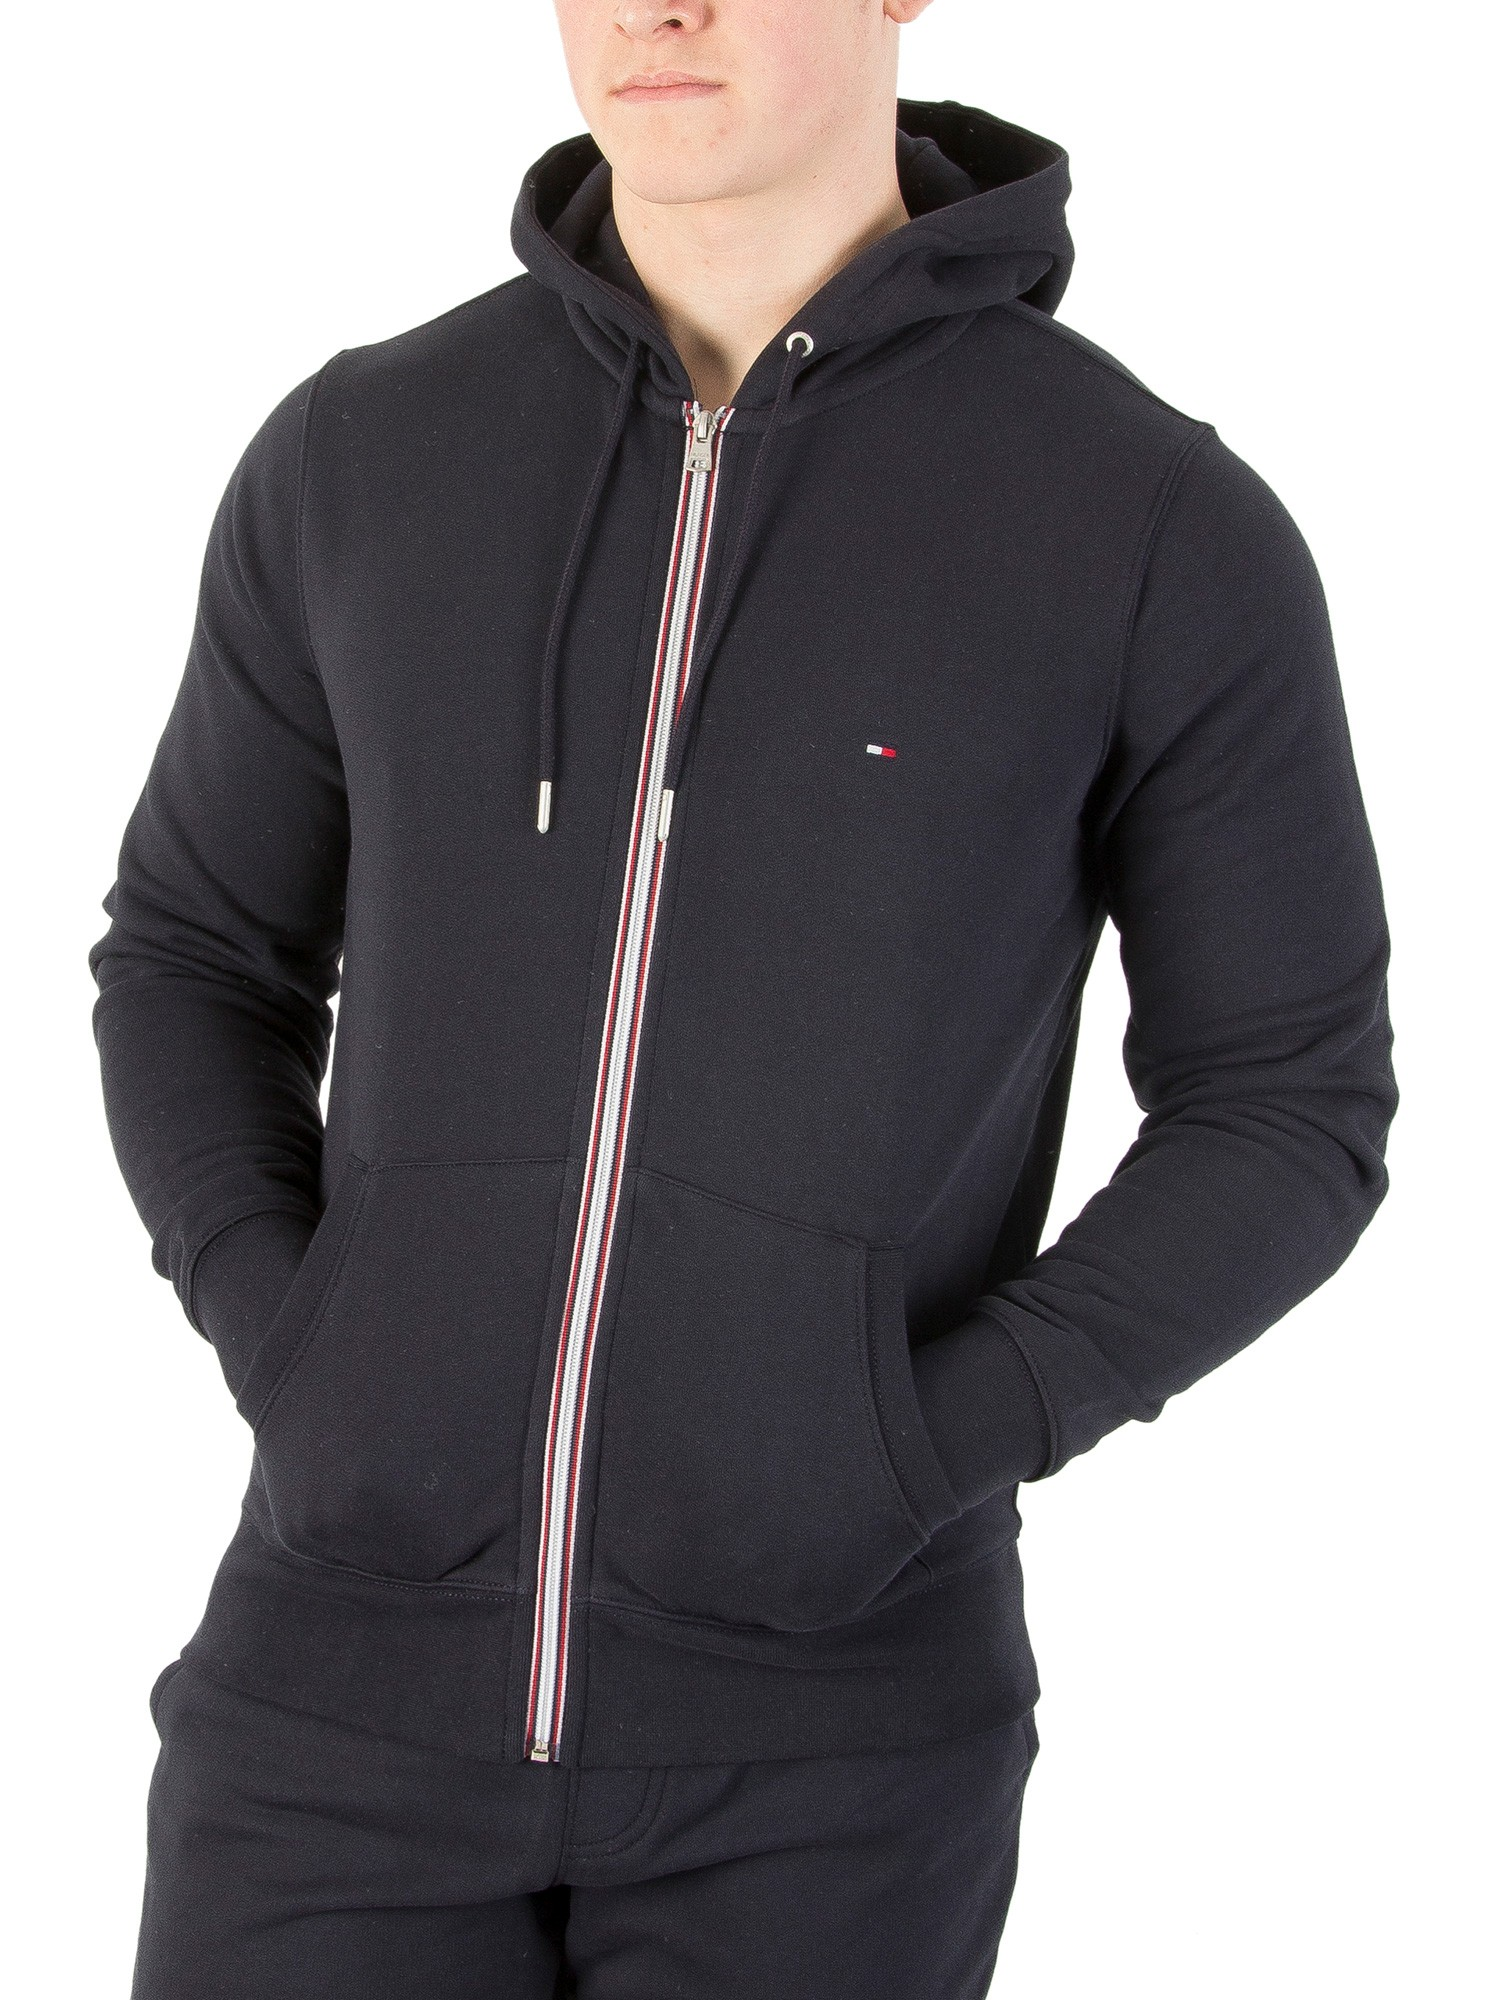 tommy hilfiger sky captain core zip hoodie stand out. Black Bedroom Furniture Sets. Home Design Ideas